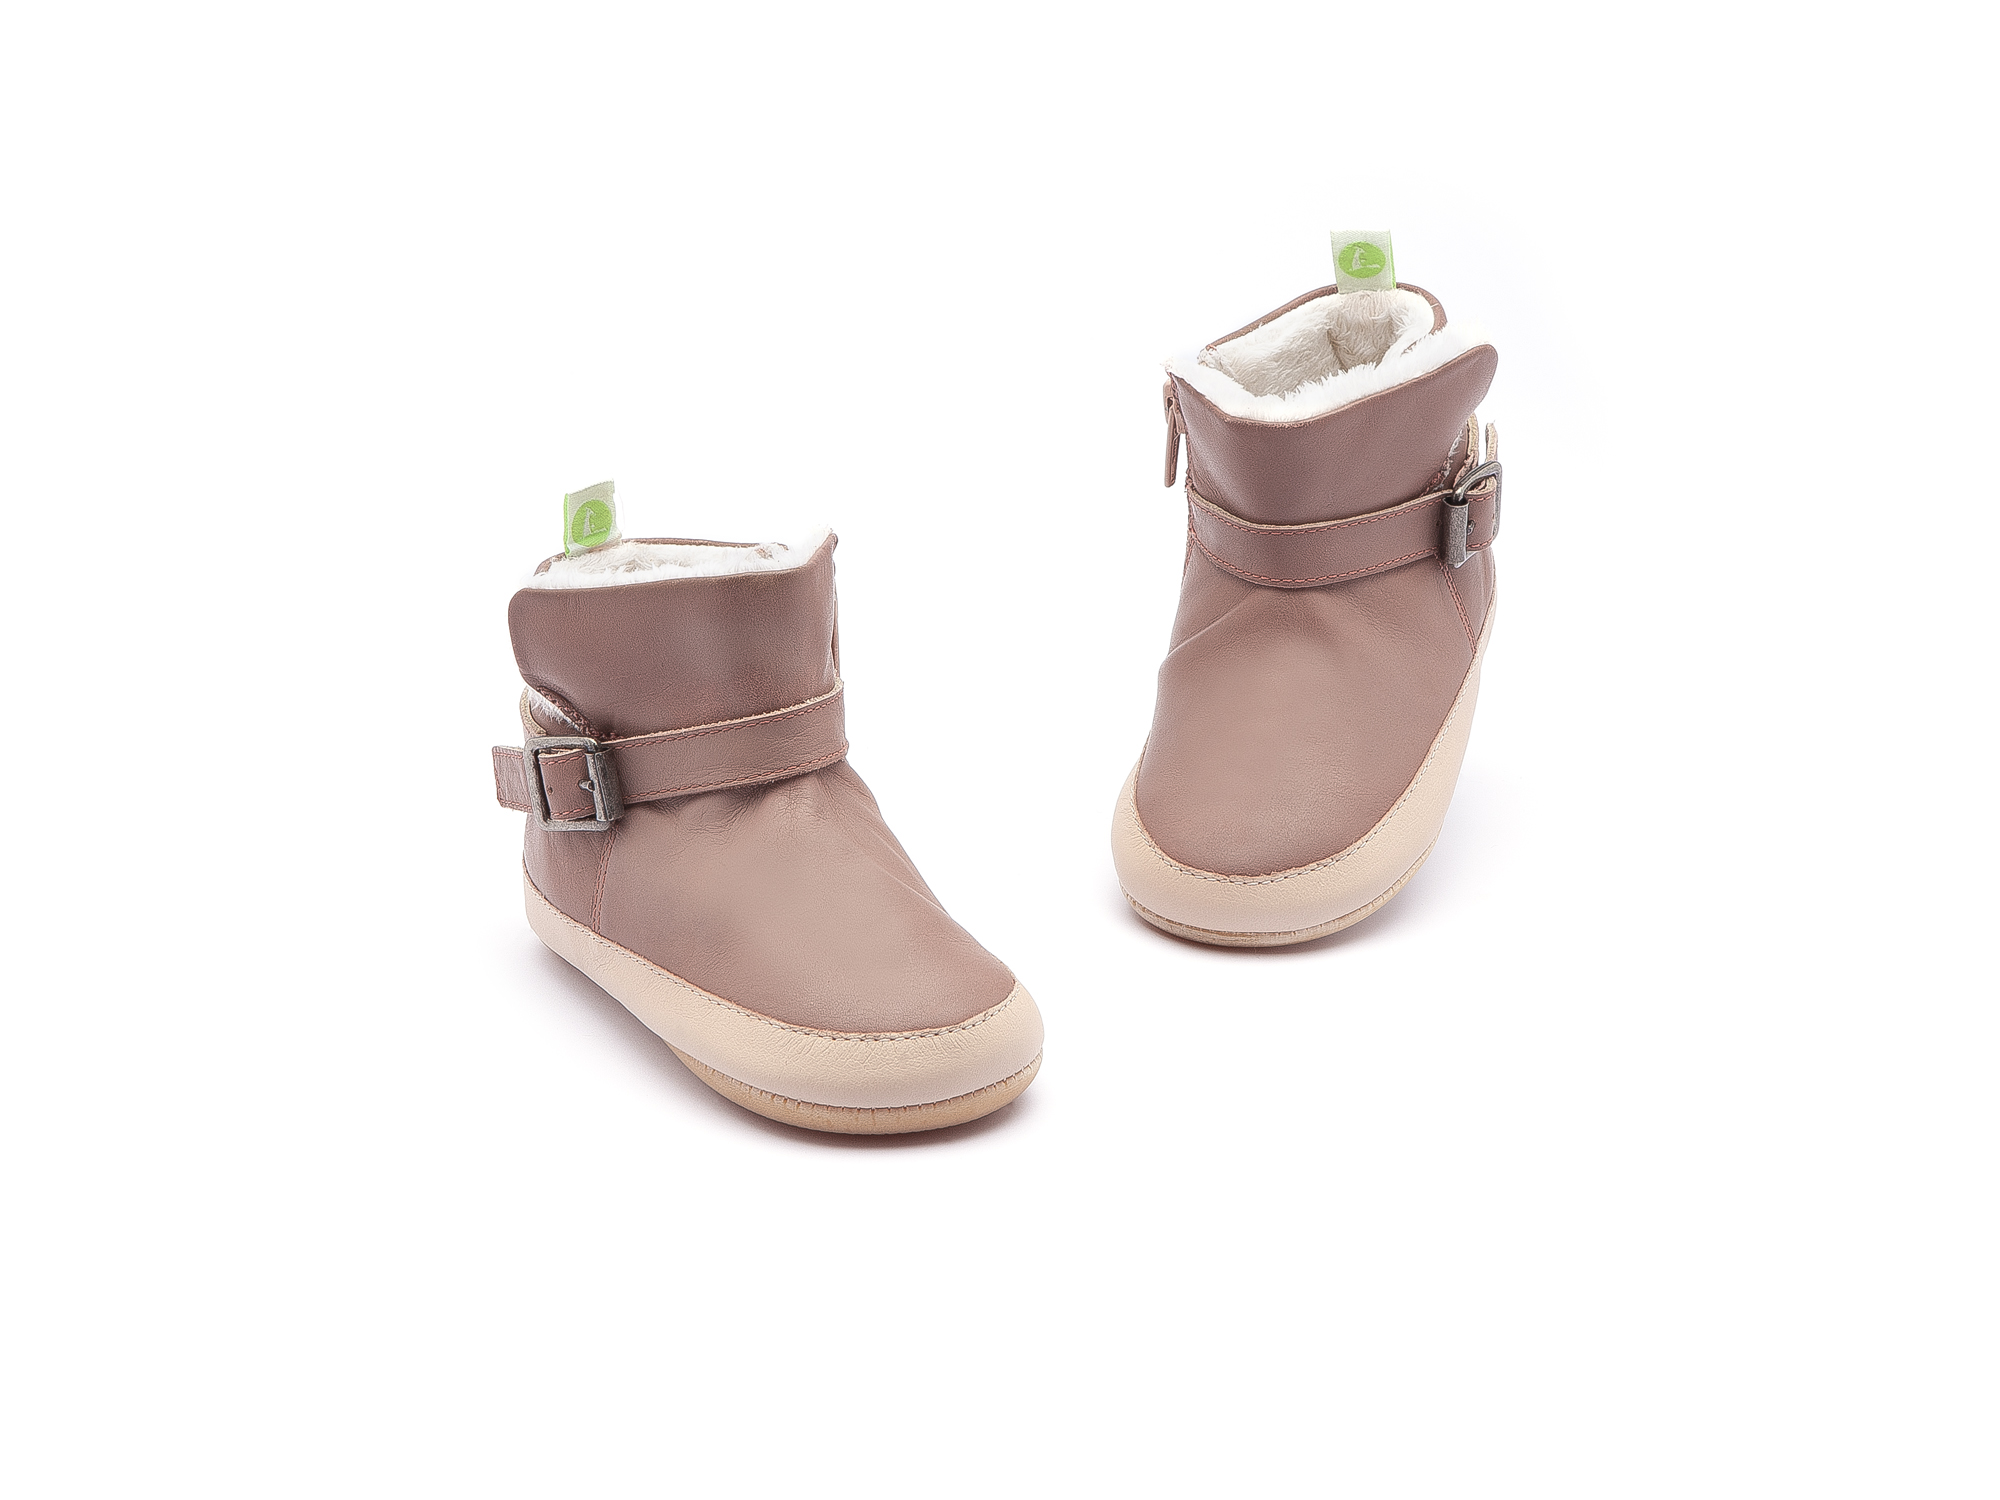 Bota Chilly Mogno Rose/ Yogurt Baby 0 à 2 anos - 3